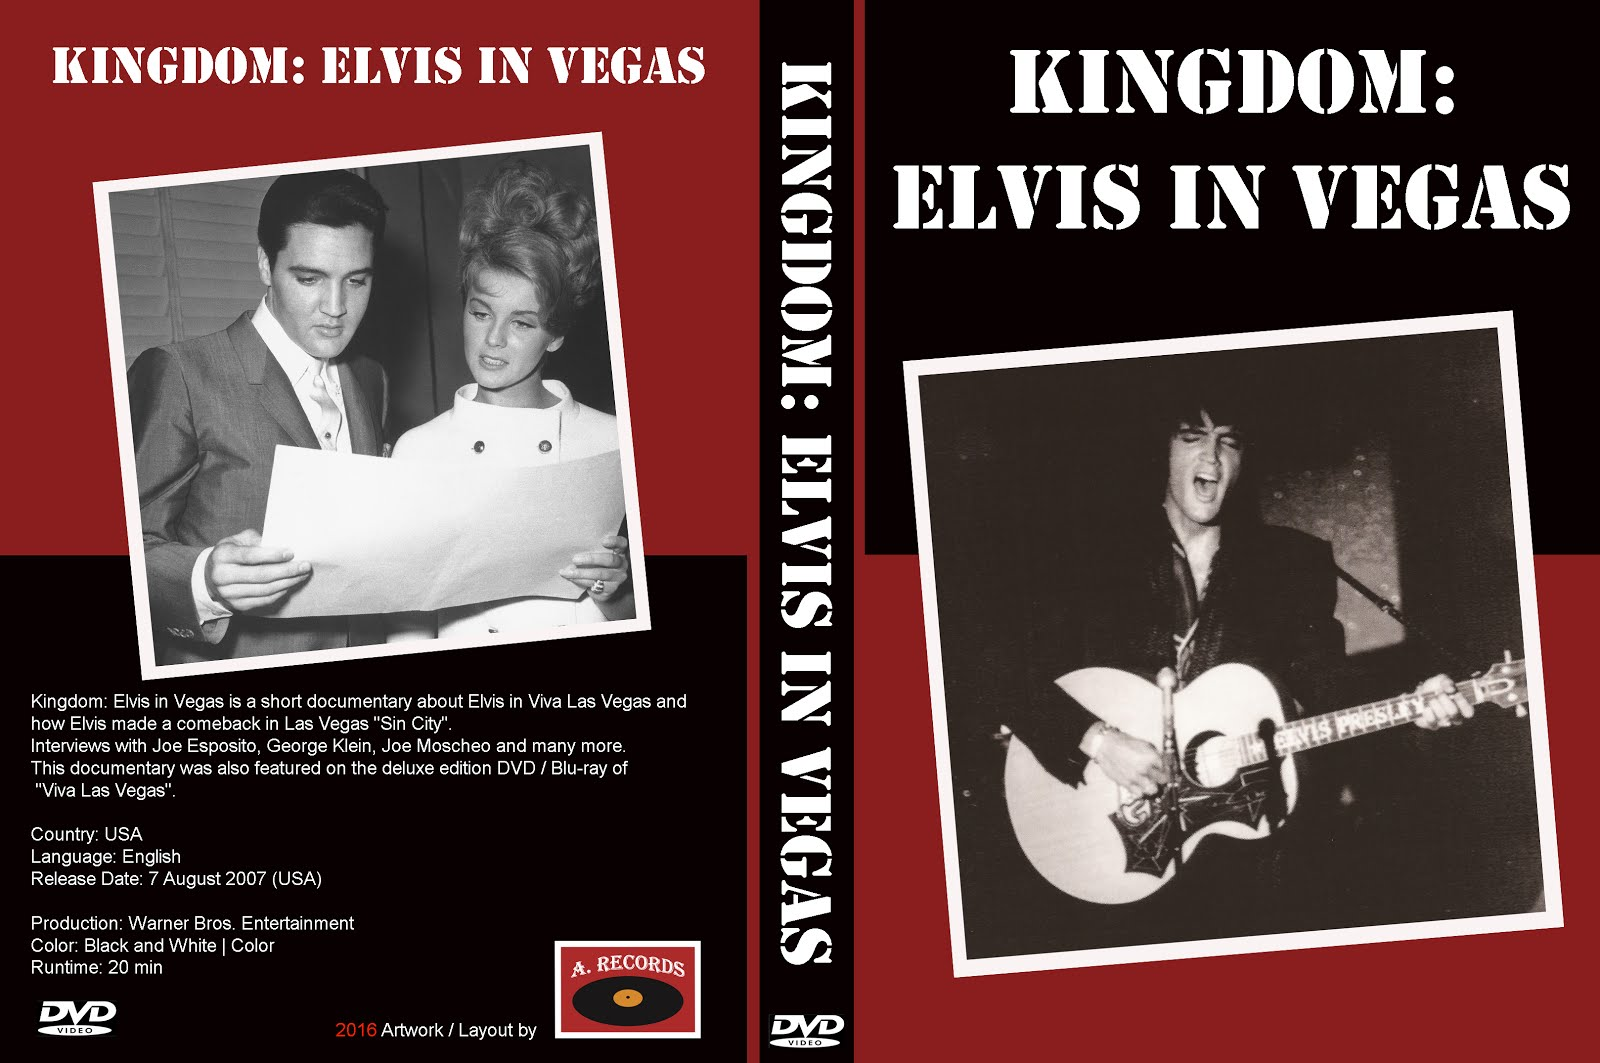 Kingdom: Elvis In Vegas (DVD) (January 2016)